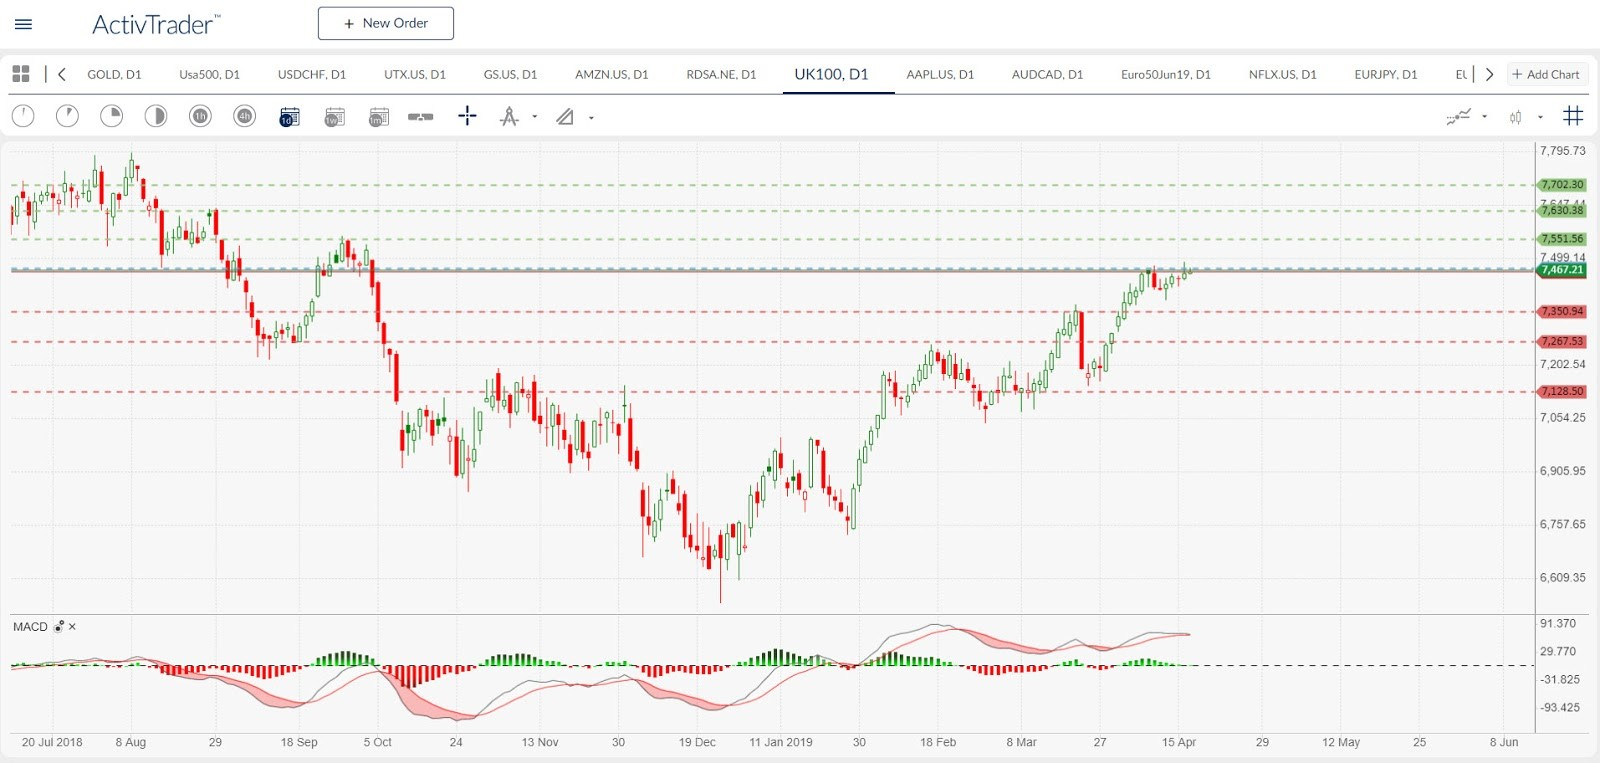 UK100 - daily chart. Source: ActivTrader